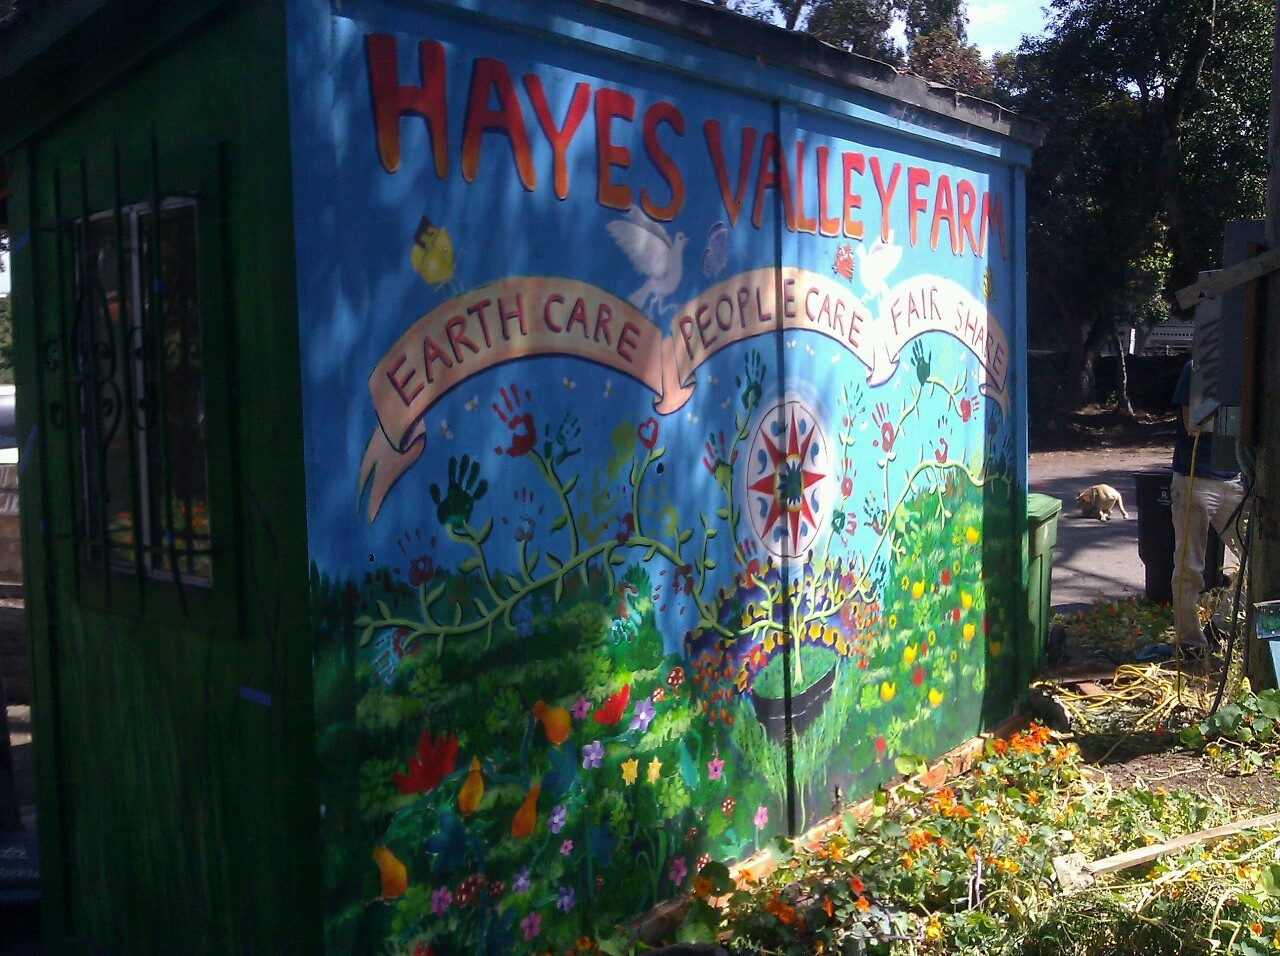 Hayes Valley Farm's iconic mural displays the three ethics of permaculture - Earth Care, People Care, and Fair Share, as well as the many hands of core volunteers, painted in 2010 by Daniel Farnan.